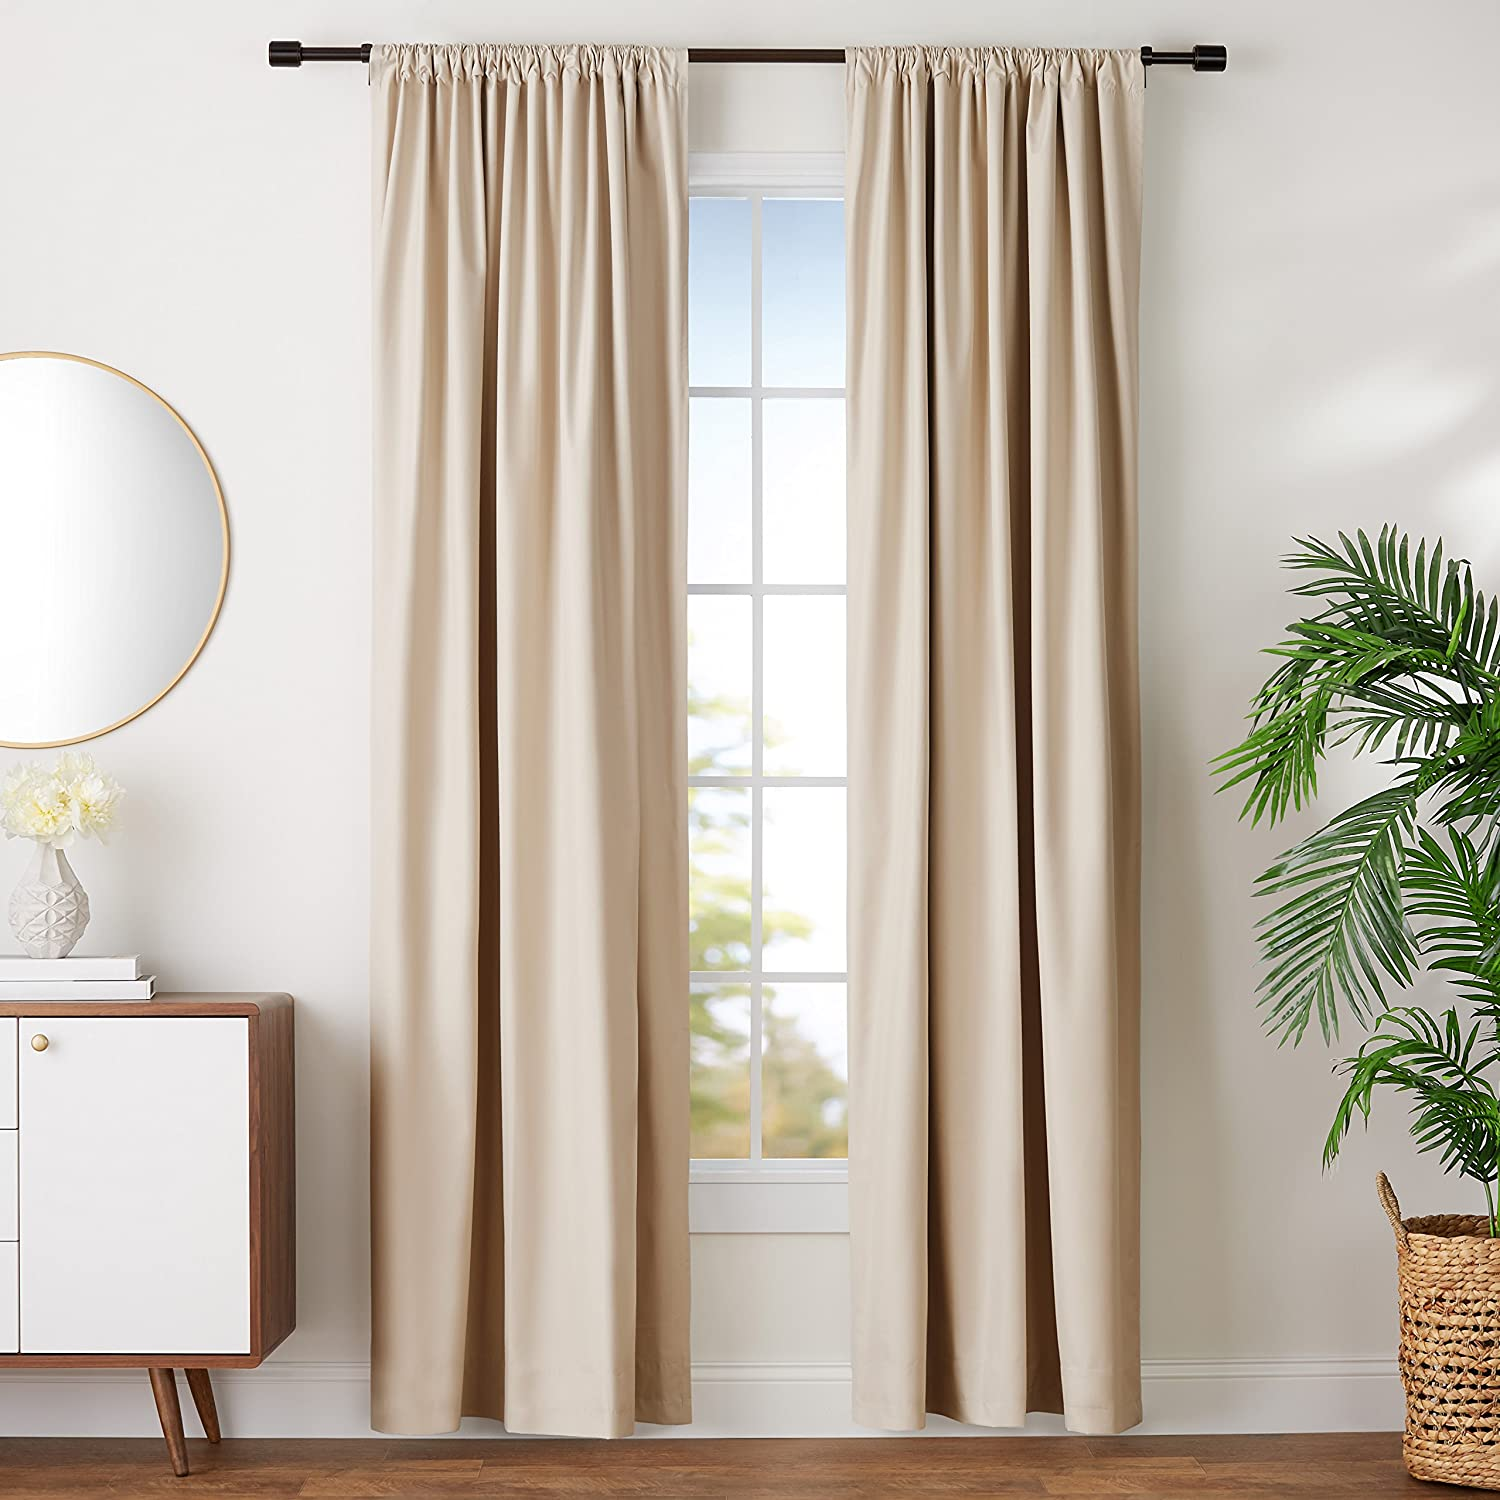 Neutral Blackout Curtains